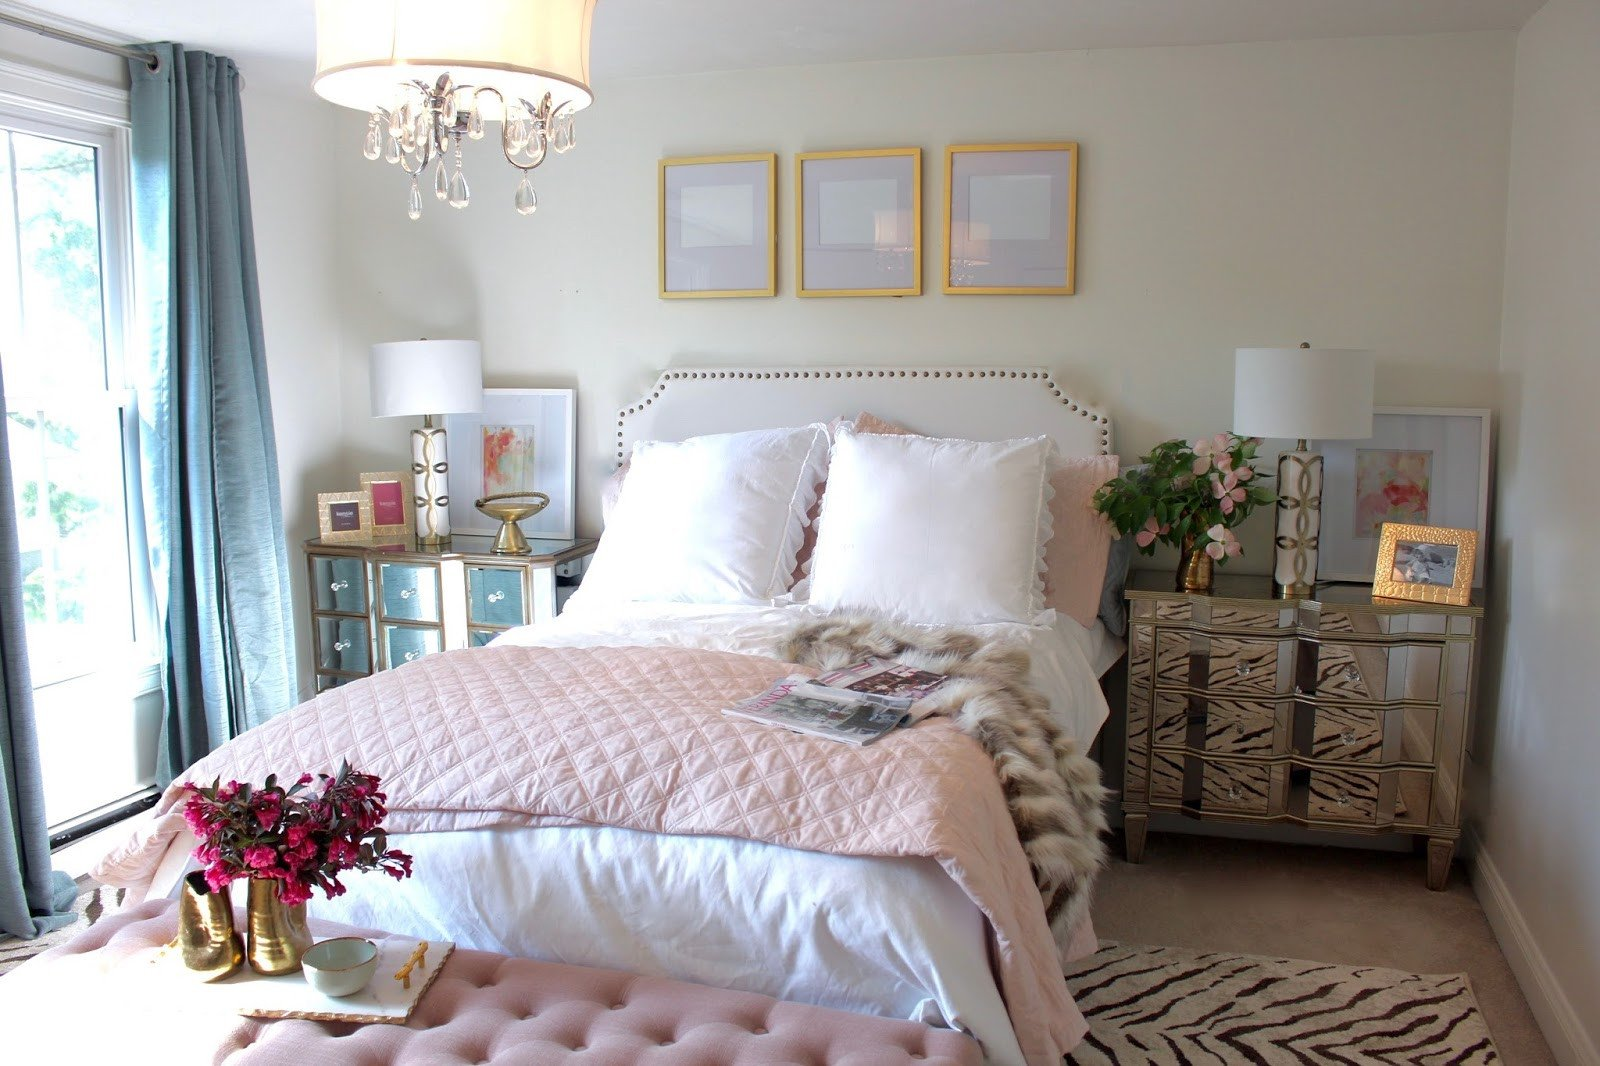 Pink and Gold Bedroom Decor Unique Room Reveal Pink and Gold Feminine Bedroom My Guest Room with sources – south Shore